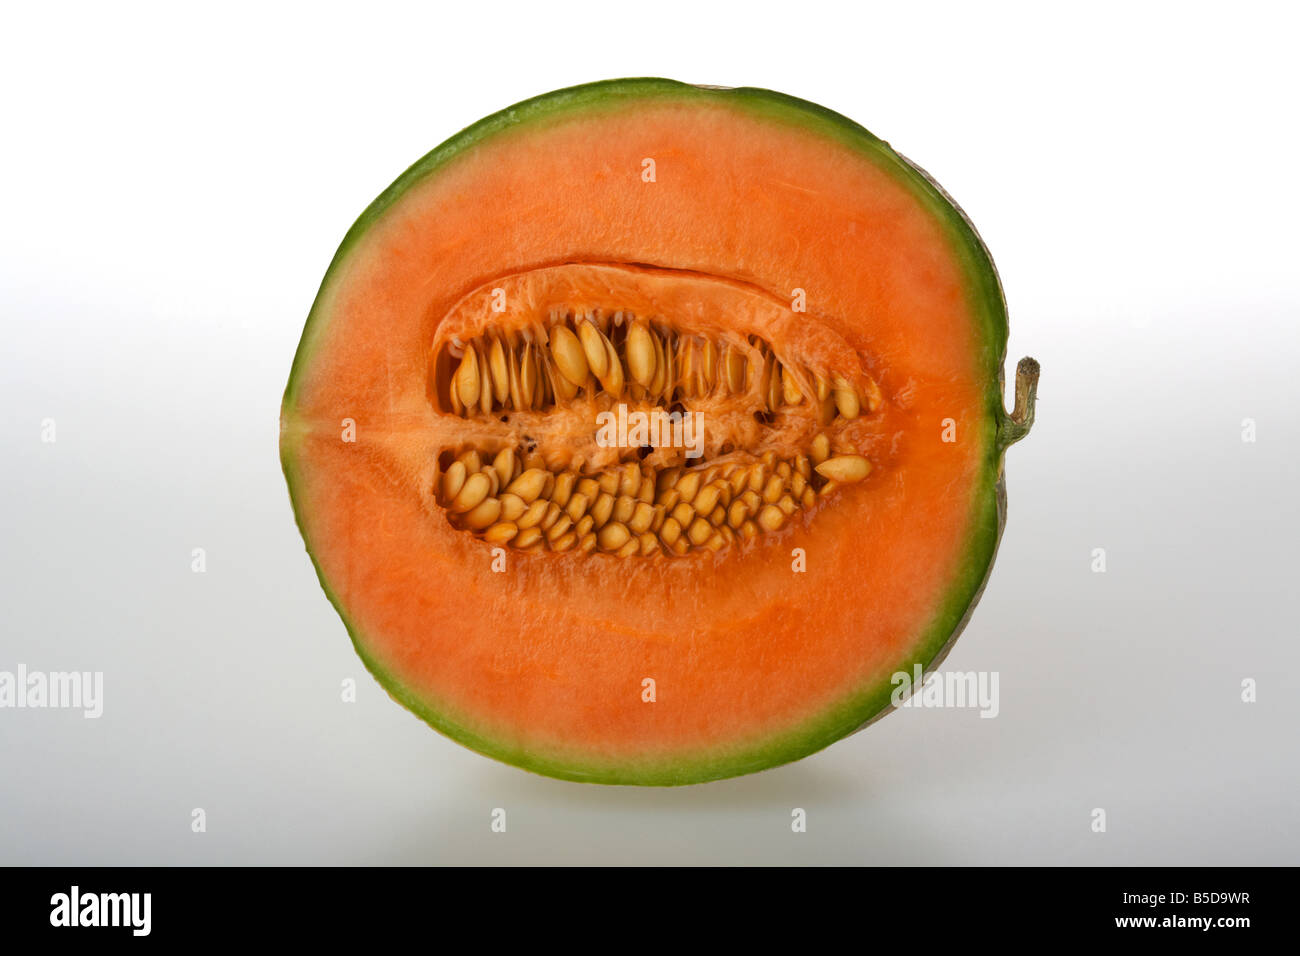 how to tell if a galia melon is ripe